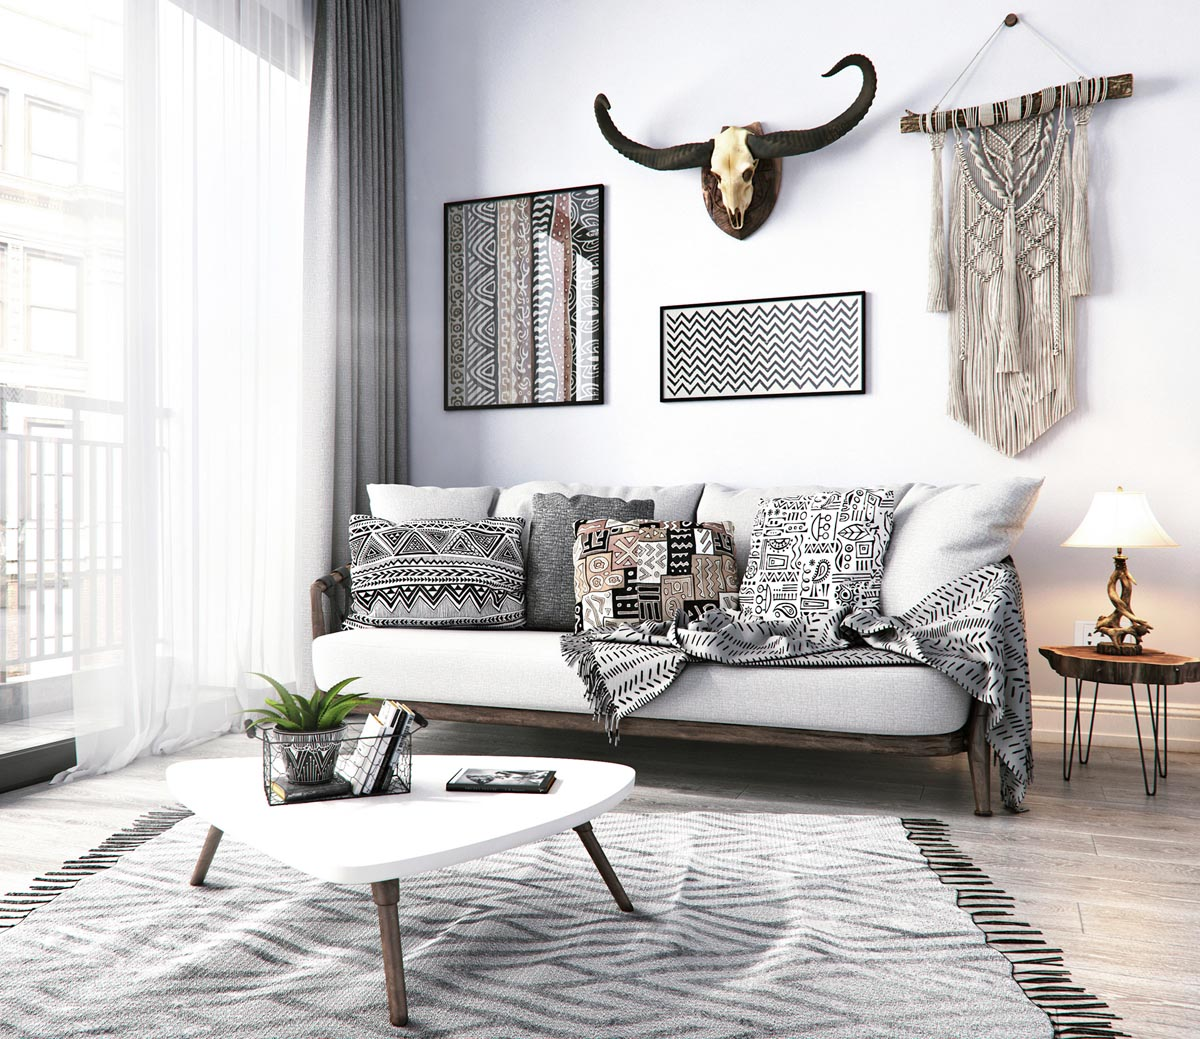 modern monochrome tribal decor. Black Bedroom Furniture Sets. Home Design Ideas